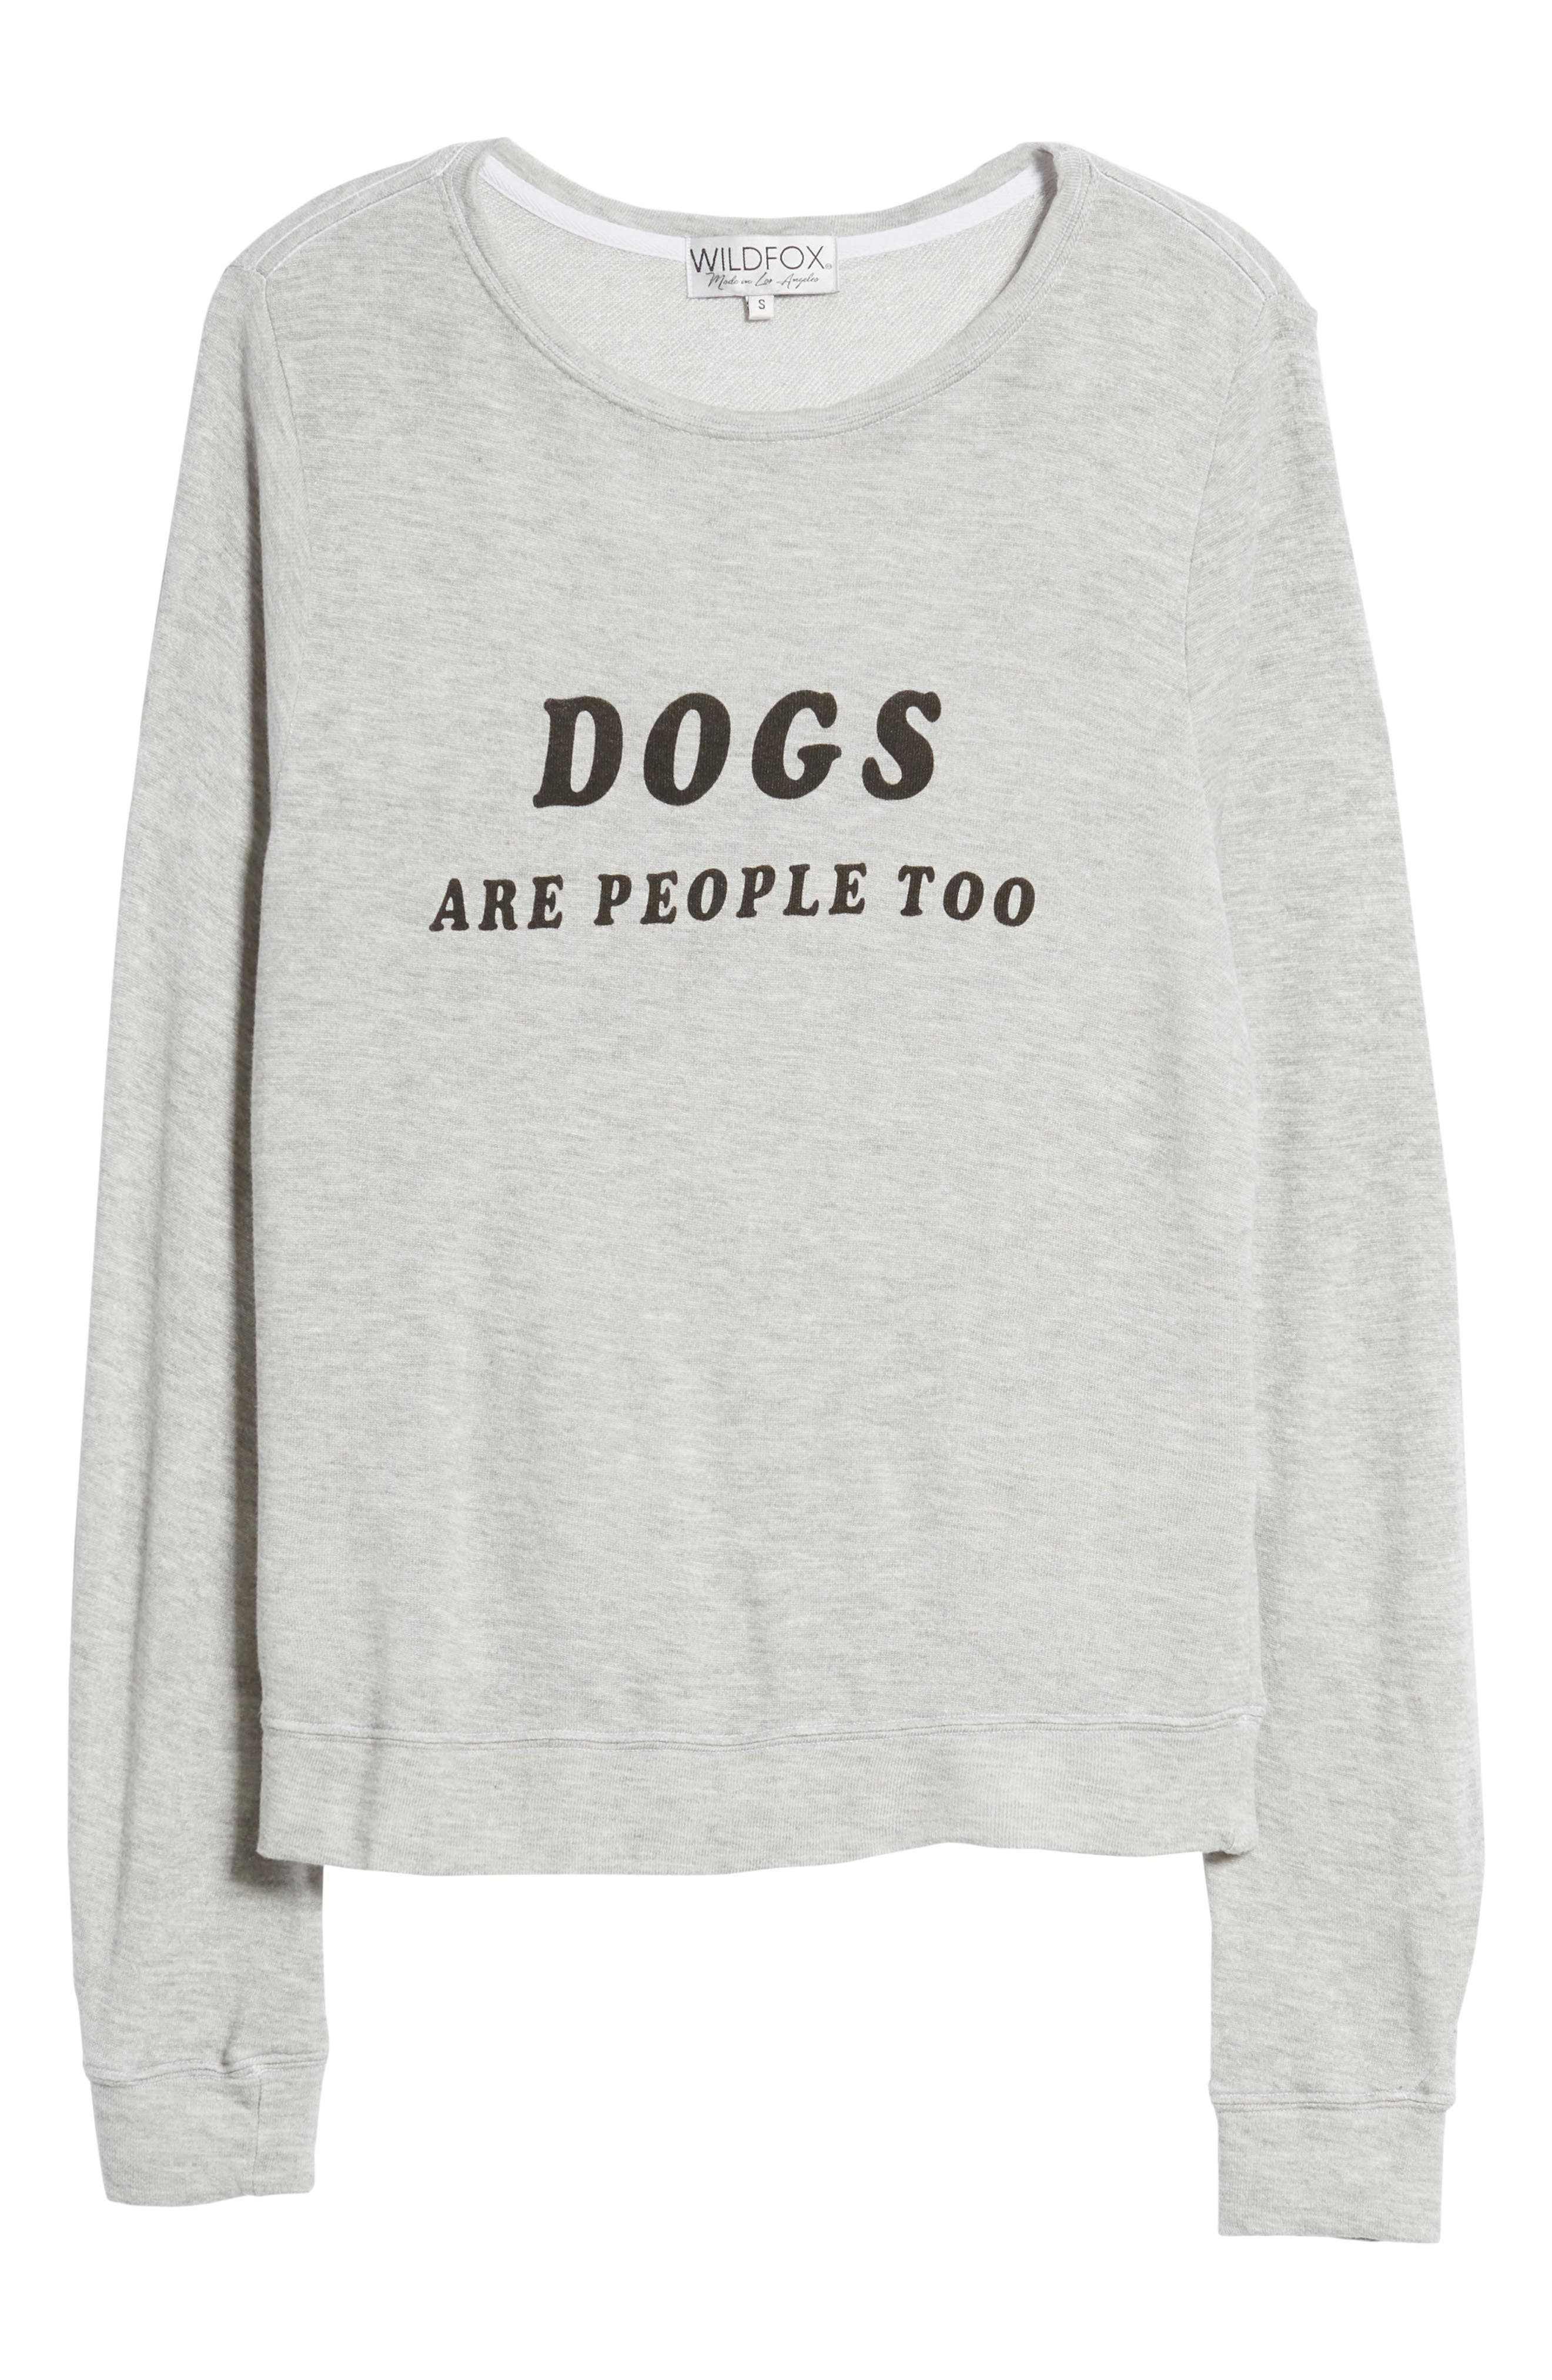 Dogs - Baggy Beach Jumper Pullover,                             Alternate thumbnail 7, color,                             Heather